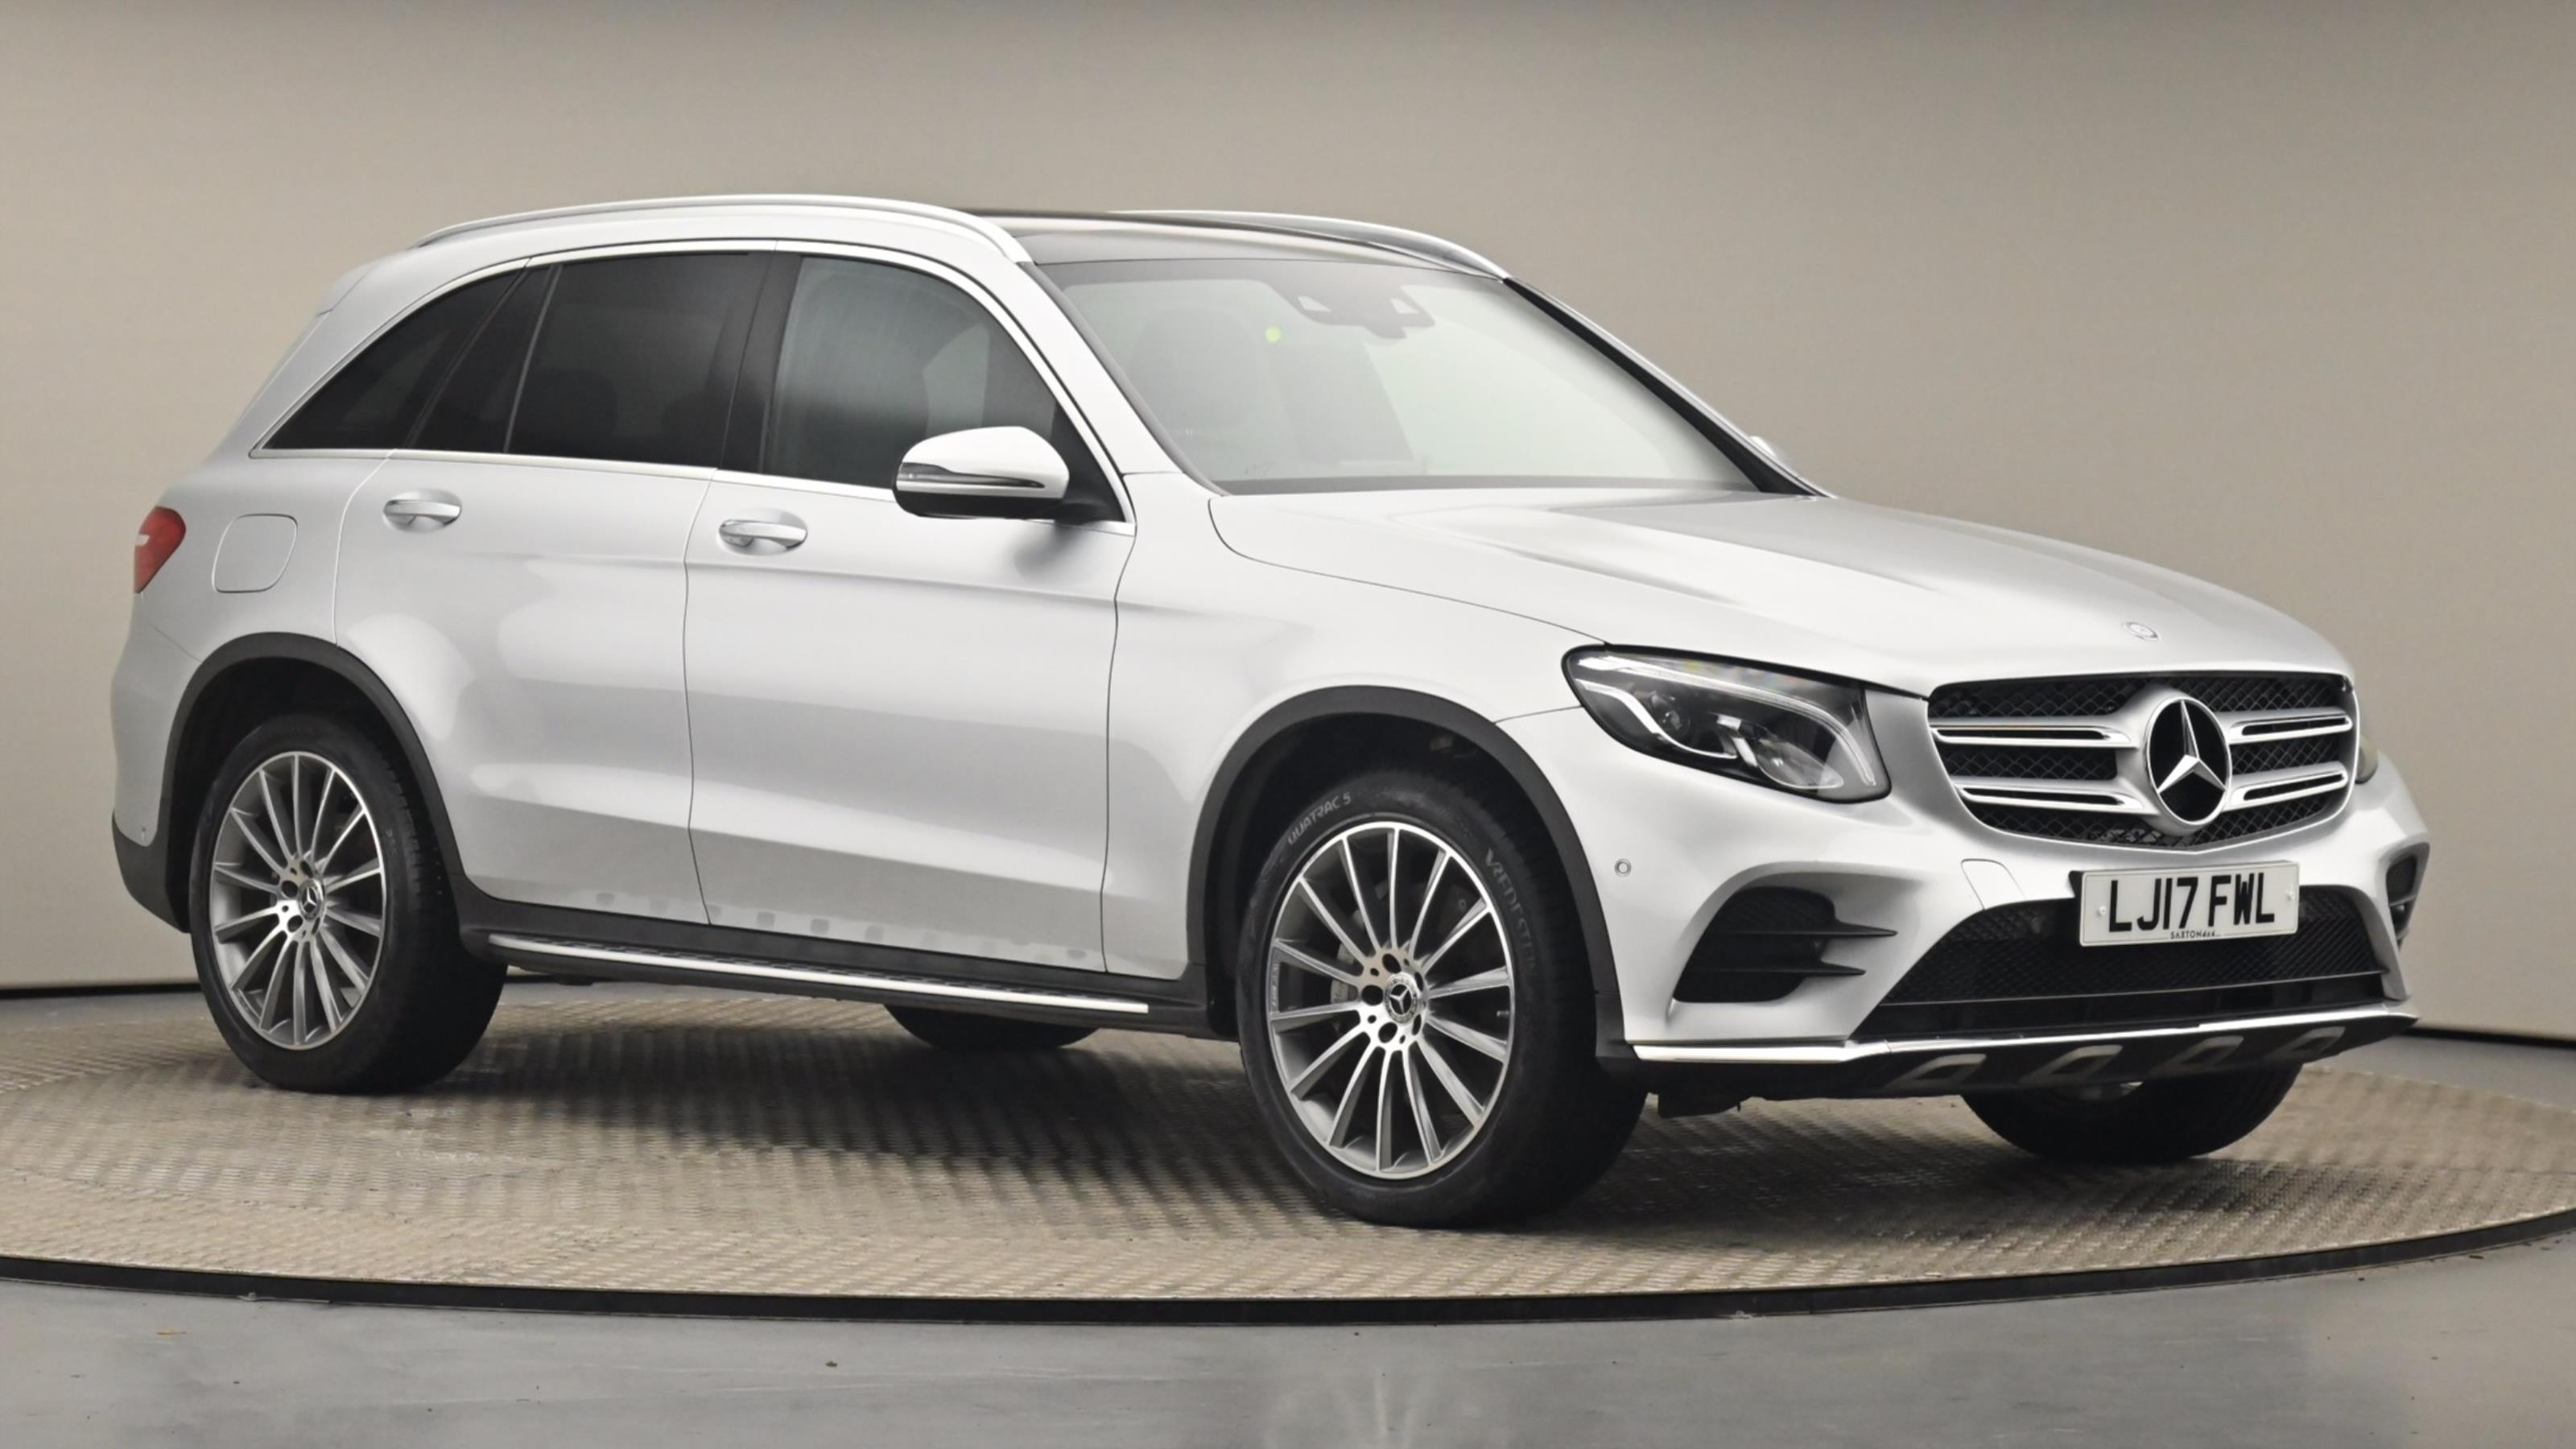 Used 2017 Mercedes-Benz GLC GLC 250d 4Matic AMG Line Premium 5dr 9G-Tronic at Saxton4x4